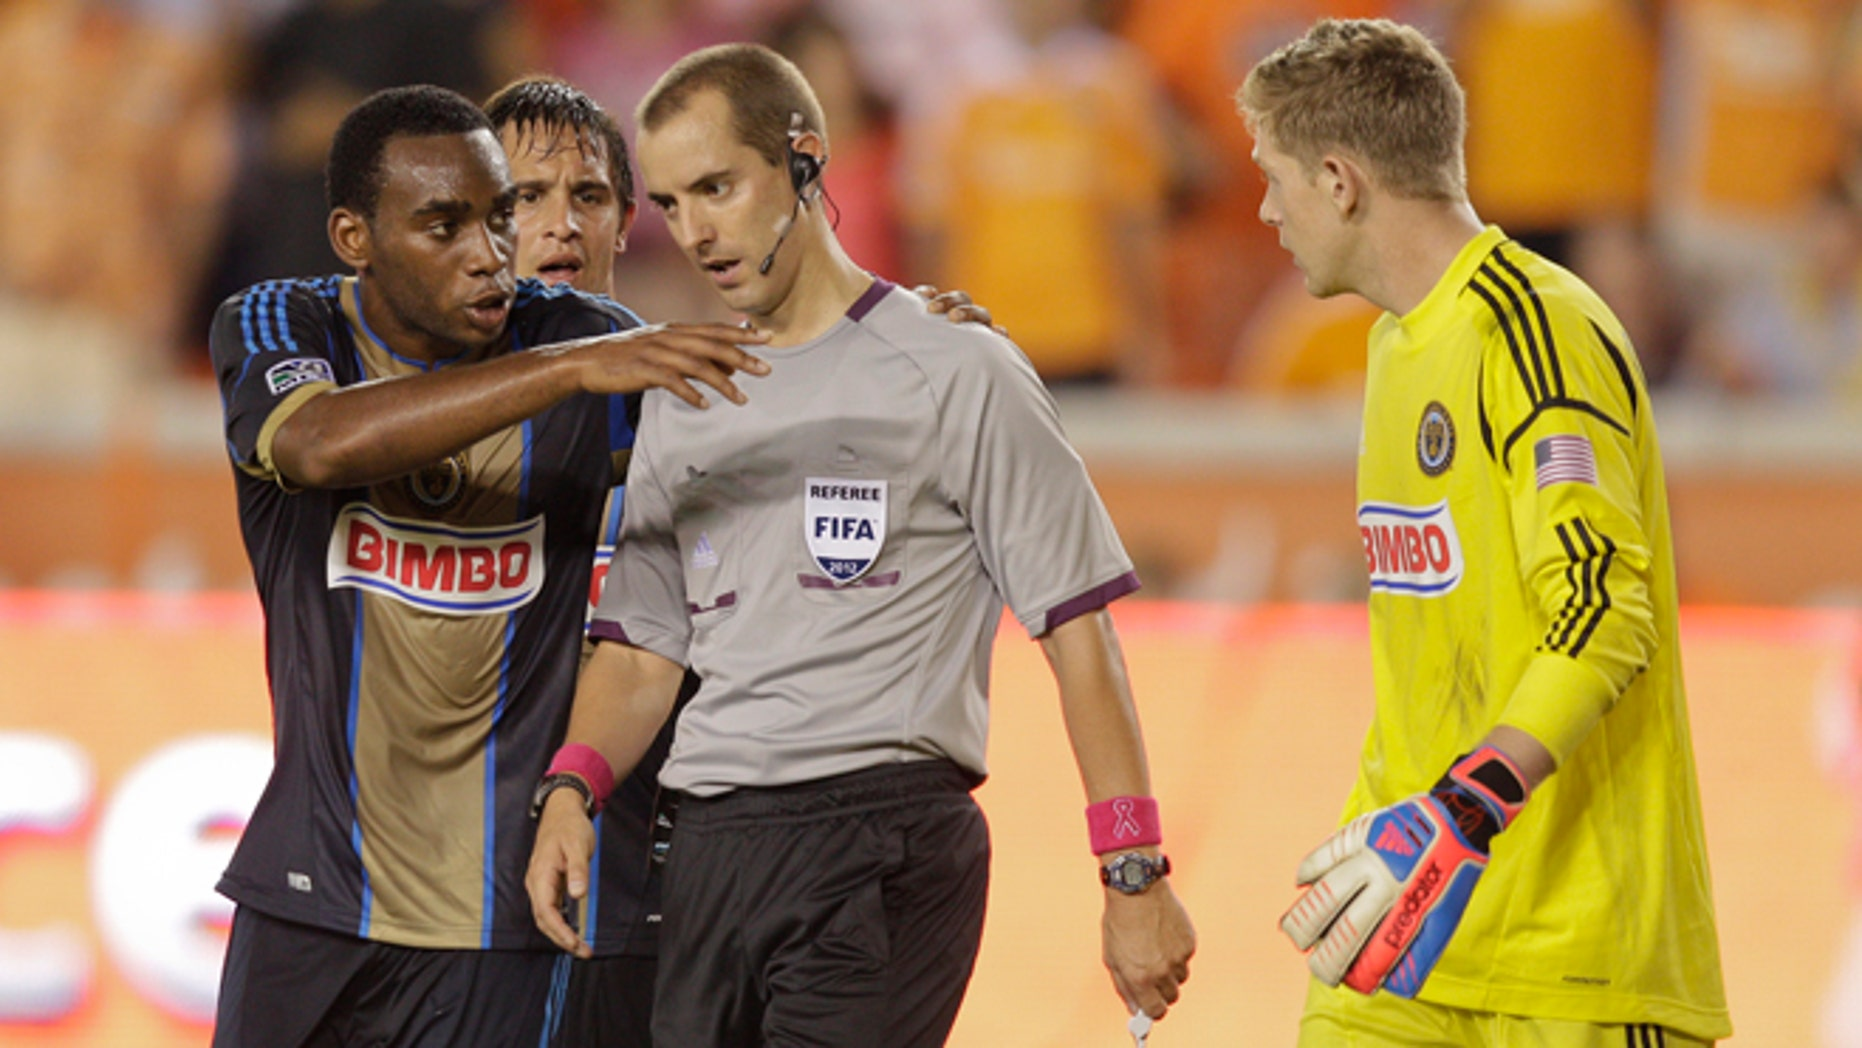 HOUSTON,TX - OCTOBER 20:  Amobi Okugo #14 of the Philadelphia Union pleads with referee Mark Geiger as goalkeeper Zac MacMath #18 of the Philadelphia Union looks on after a penalty kick was given to the Houston Dynamo at BBVA Compass Stadium on October 20, 2012 in Houston, Texas. Houston won 3-1.  (Photo by Bob Levey/Getty Images)